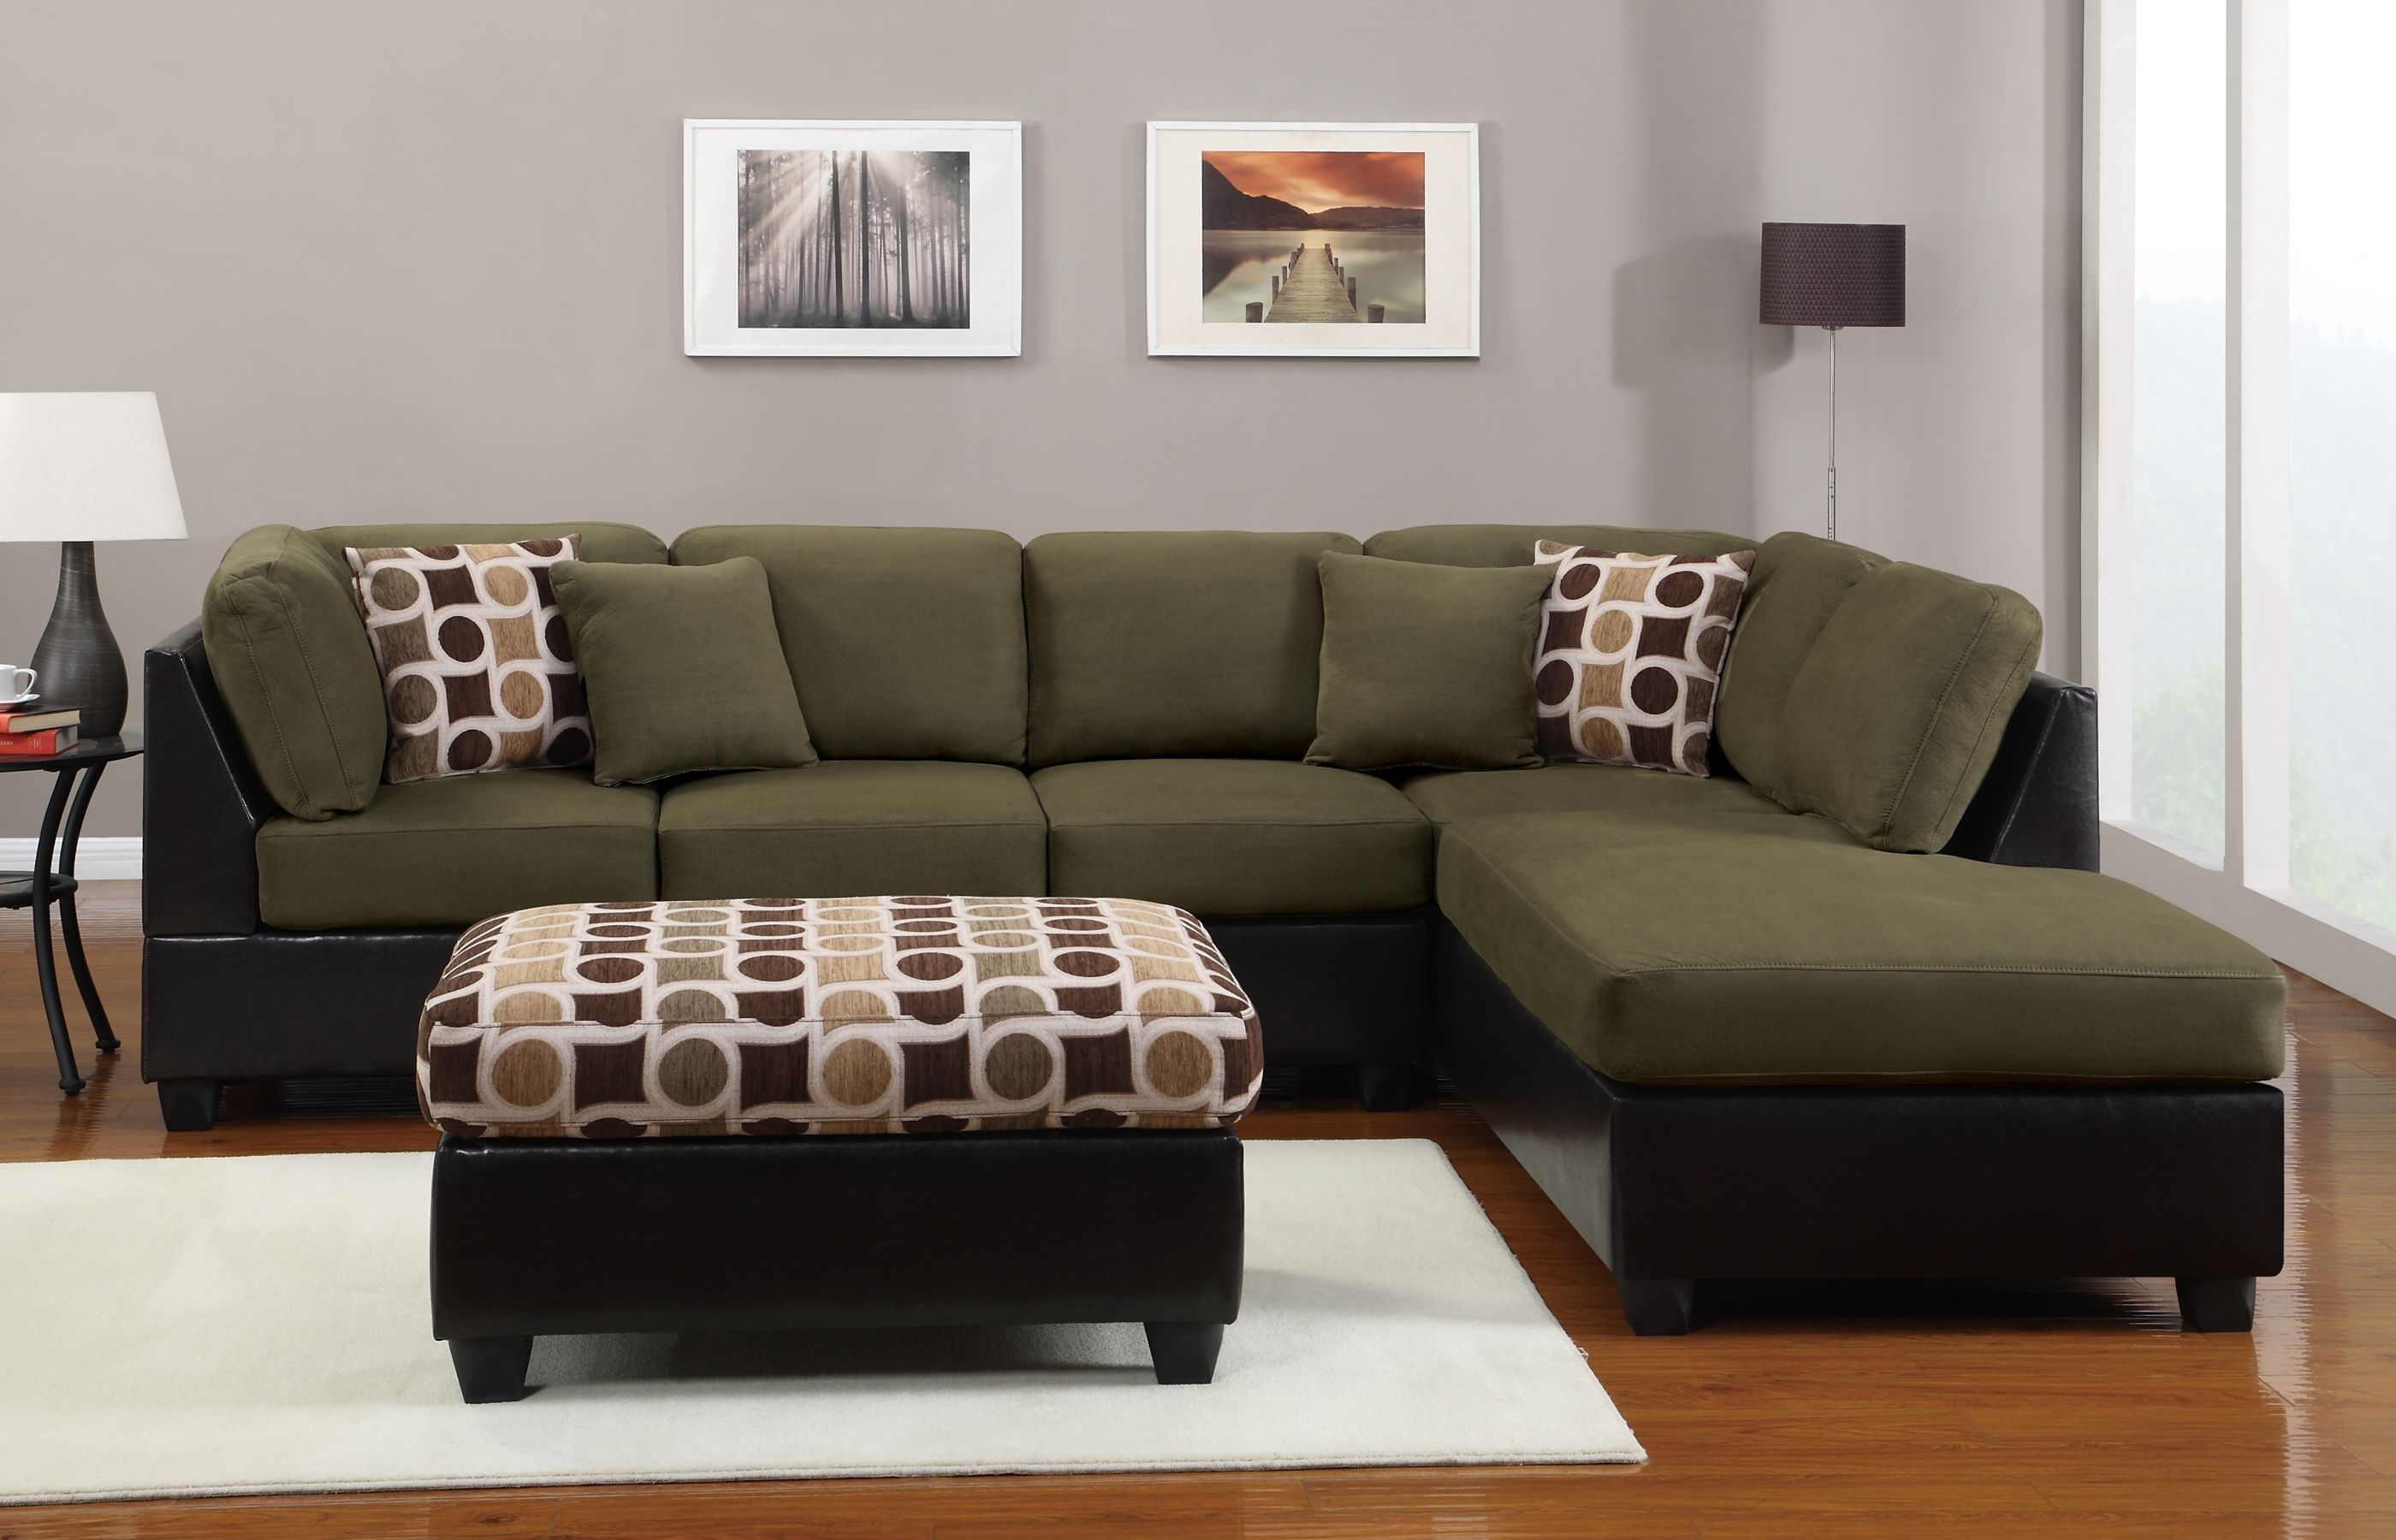 Most Popular Chaise Sectional Couch E2 80 94 Panoramalife Photography L Shaped Regarding Eau Claire Wi Sectional Sofas (View 16 of 20)